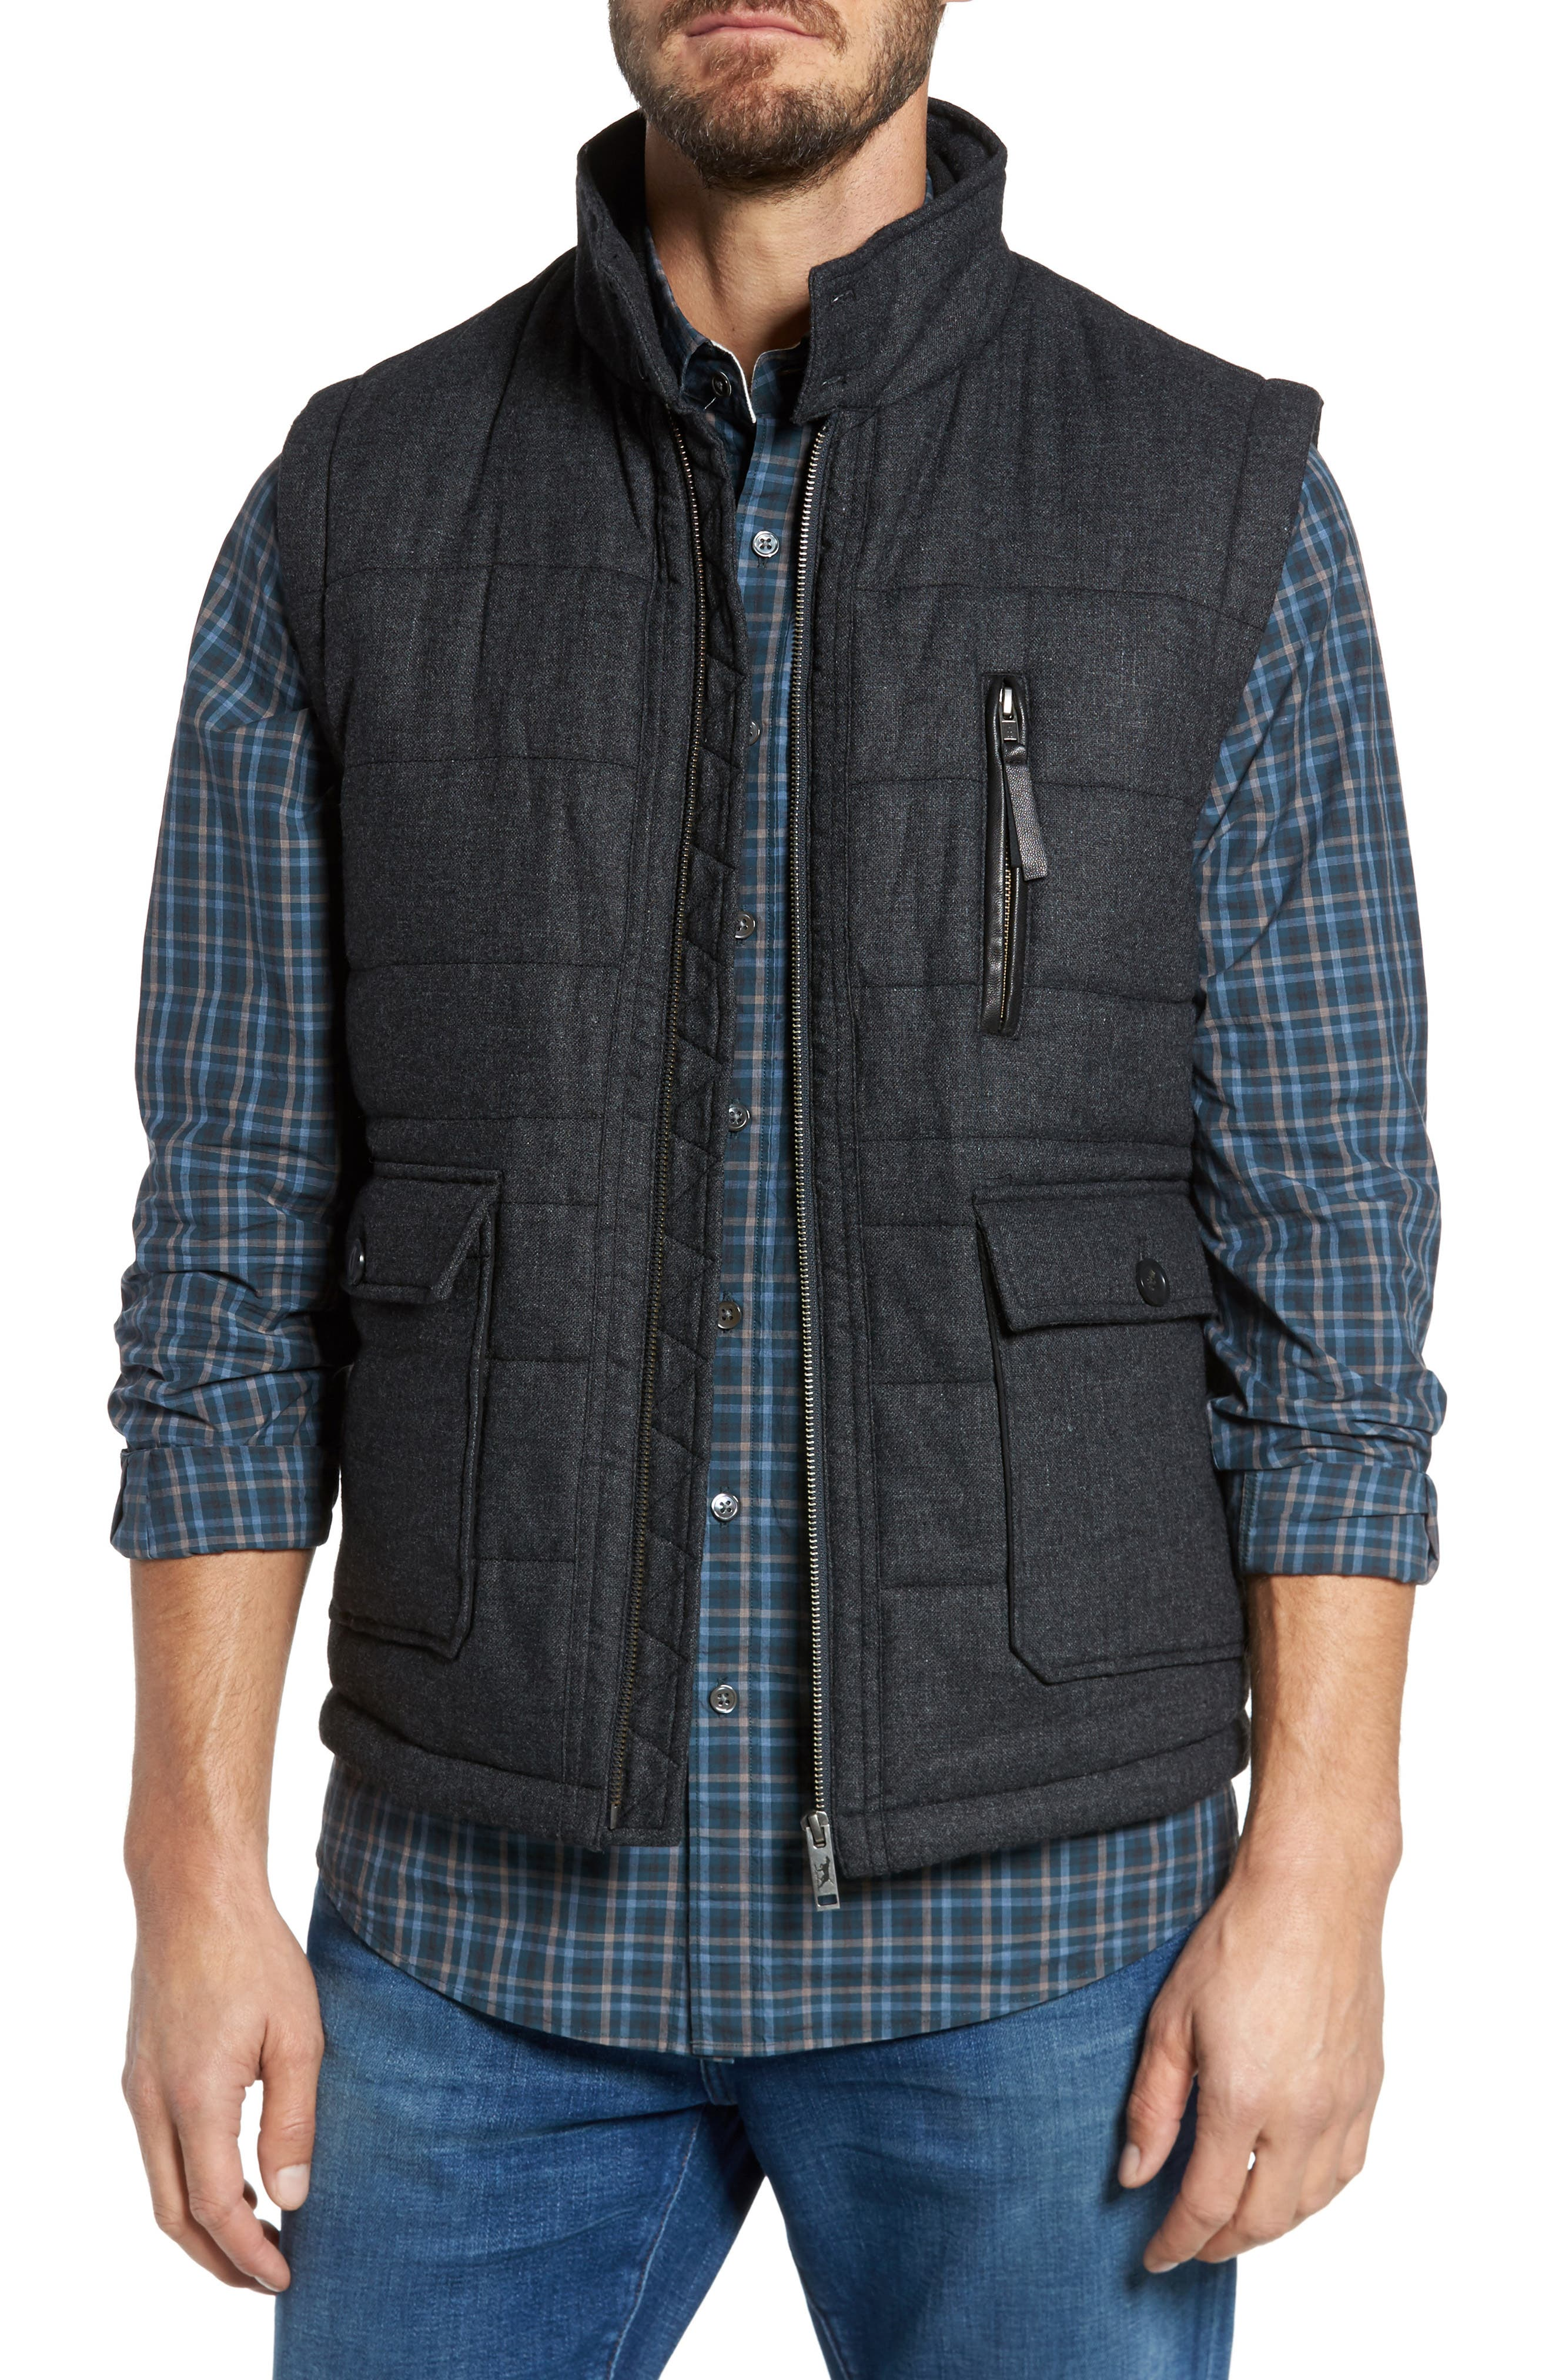 Johnsonville Quilted Vest,                         Main,                         color, 021